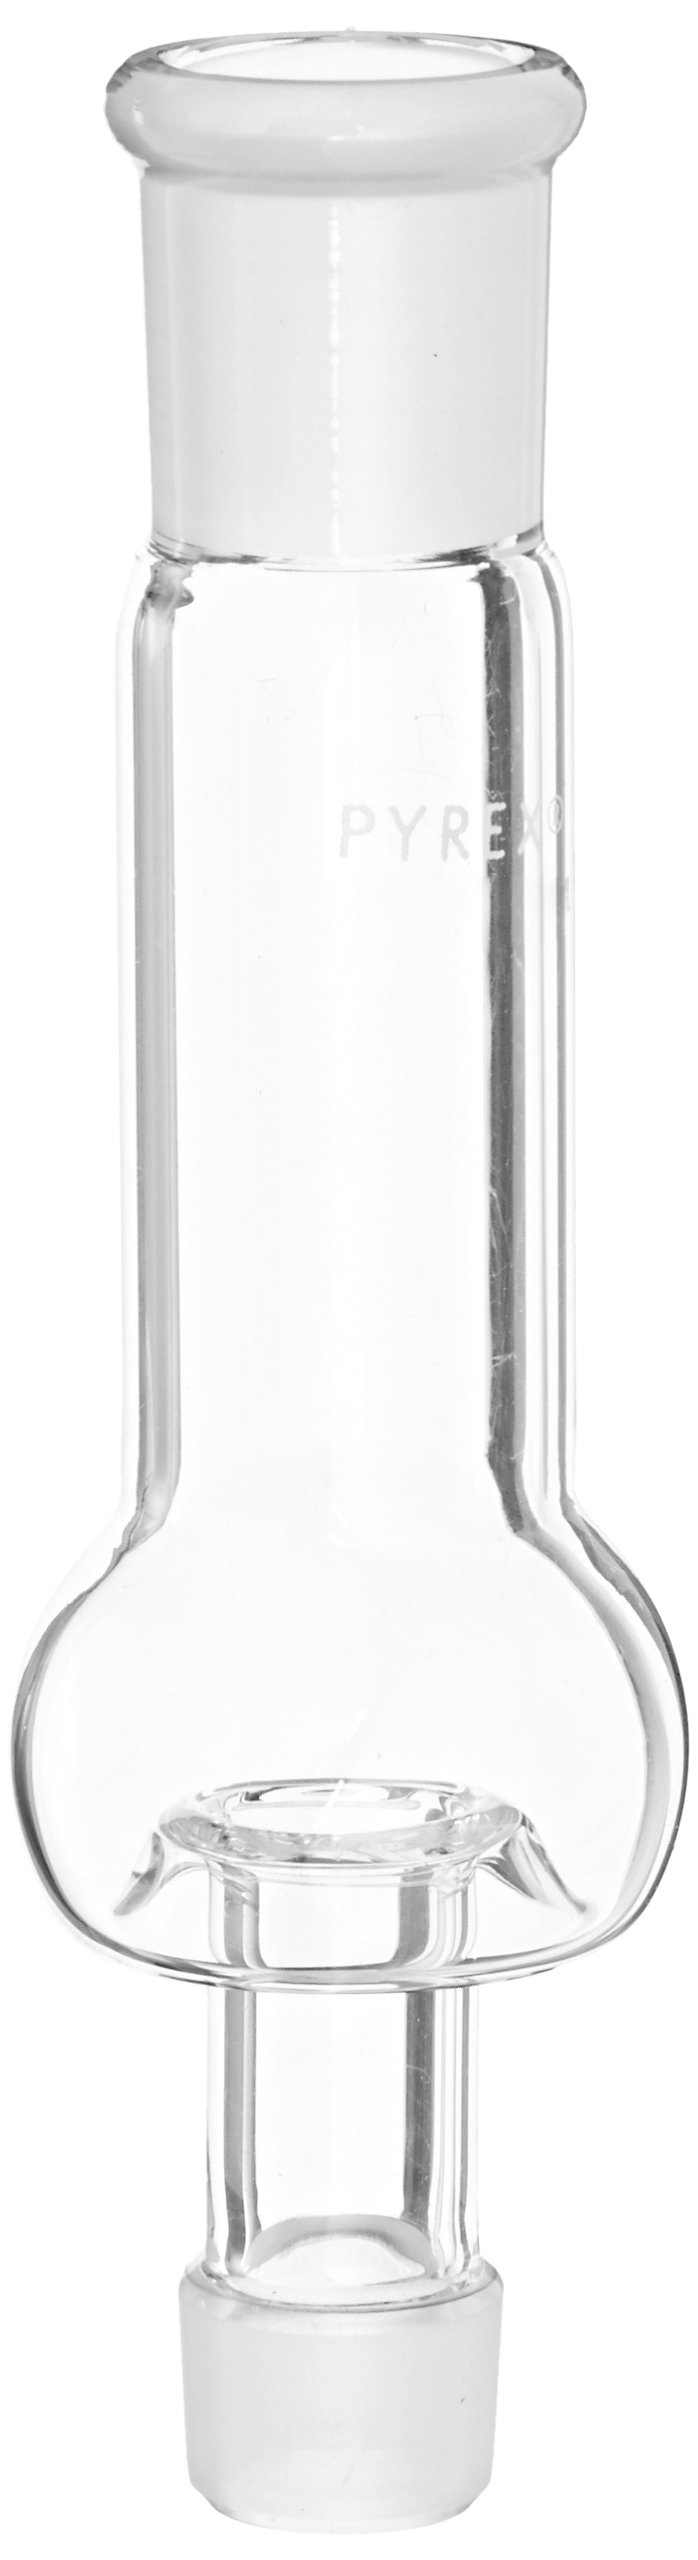 Corning Pyrex Borosilicate Glass Hickman Still Head with Standard Taper Joint 14/10 and Sidearm Port/Cap (Case of 2)